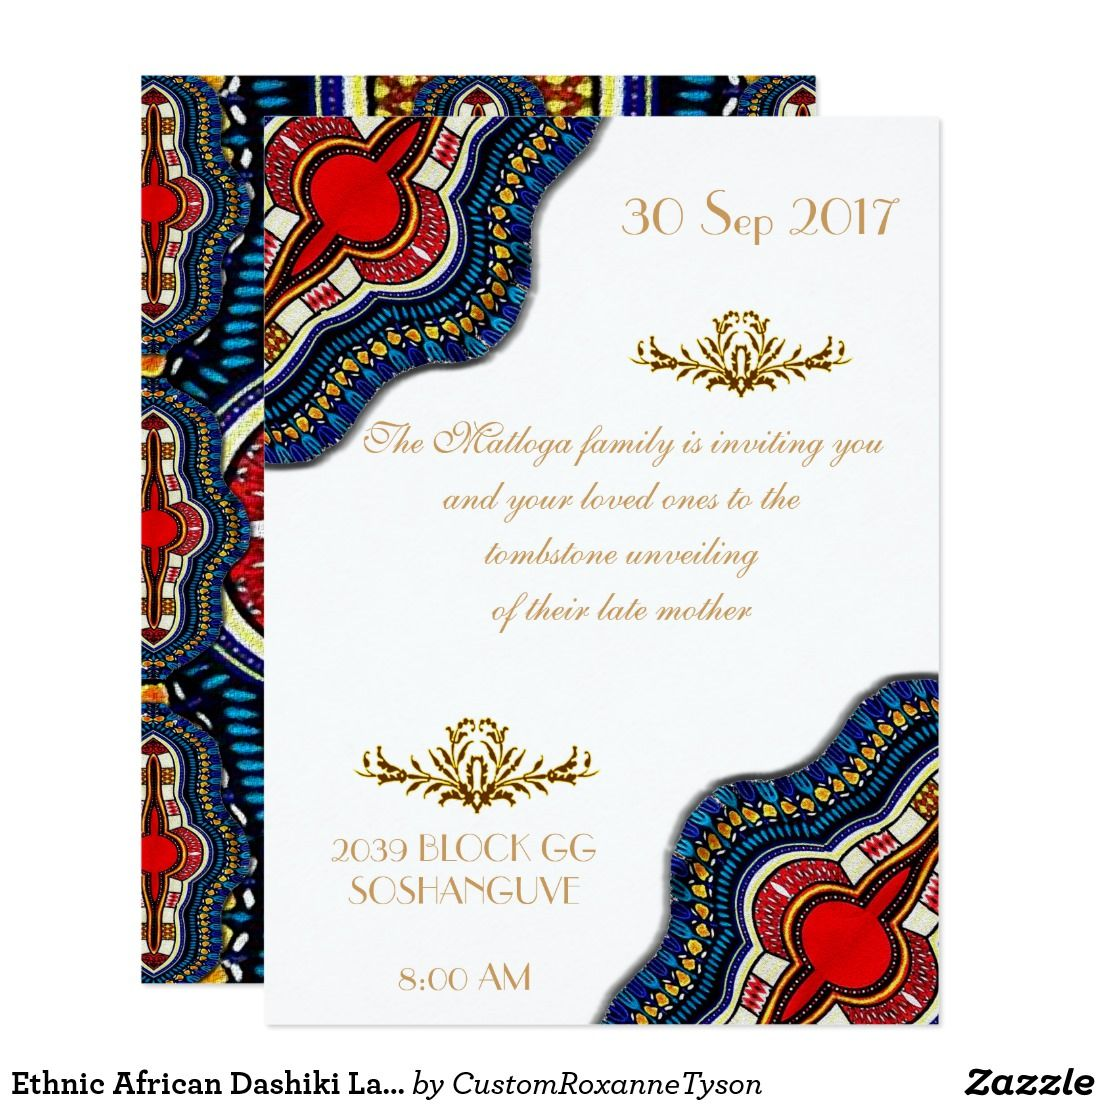 Create Your Own Invitation Zazzle Com In 2021 Wedding Party Cards African Wedding Theme Traditional Invitation